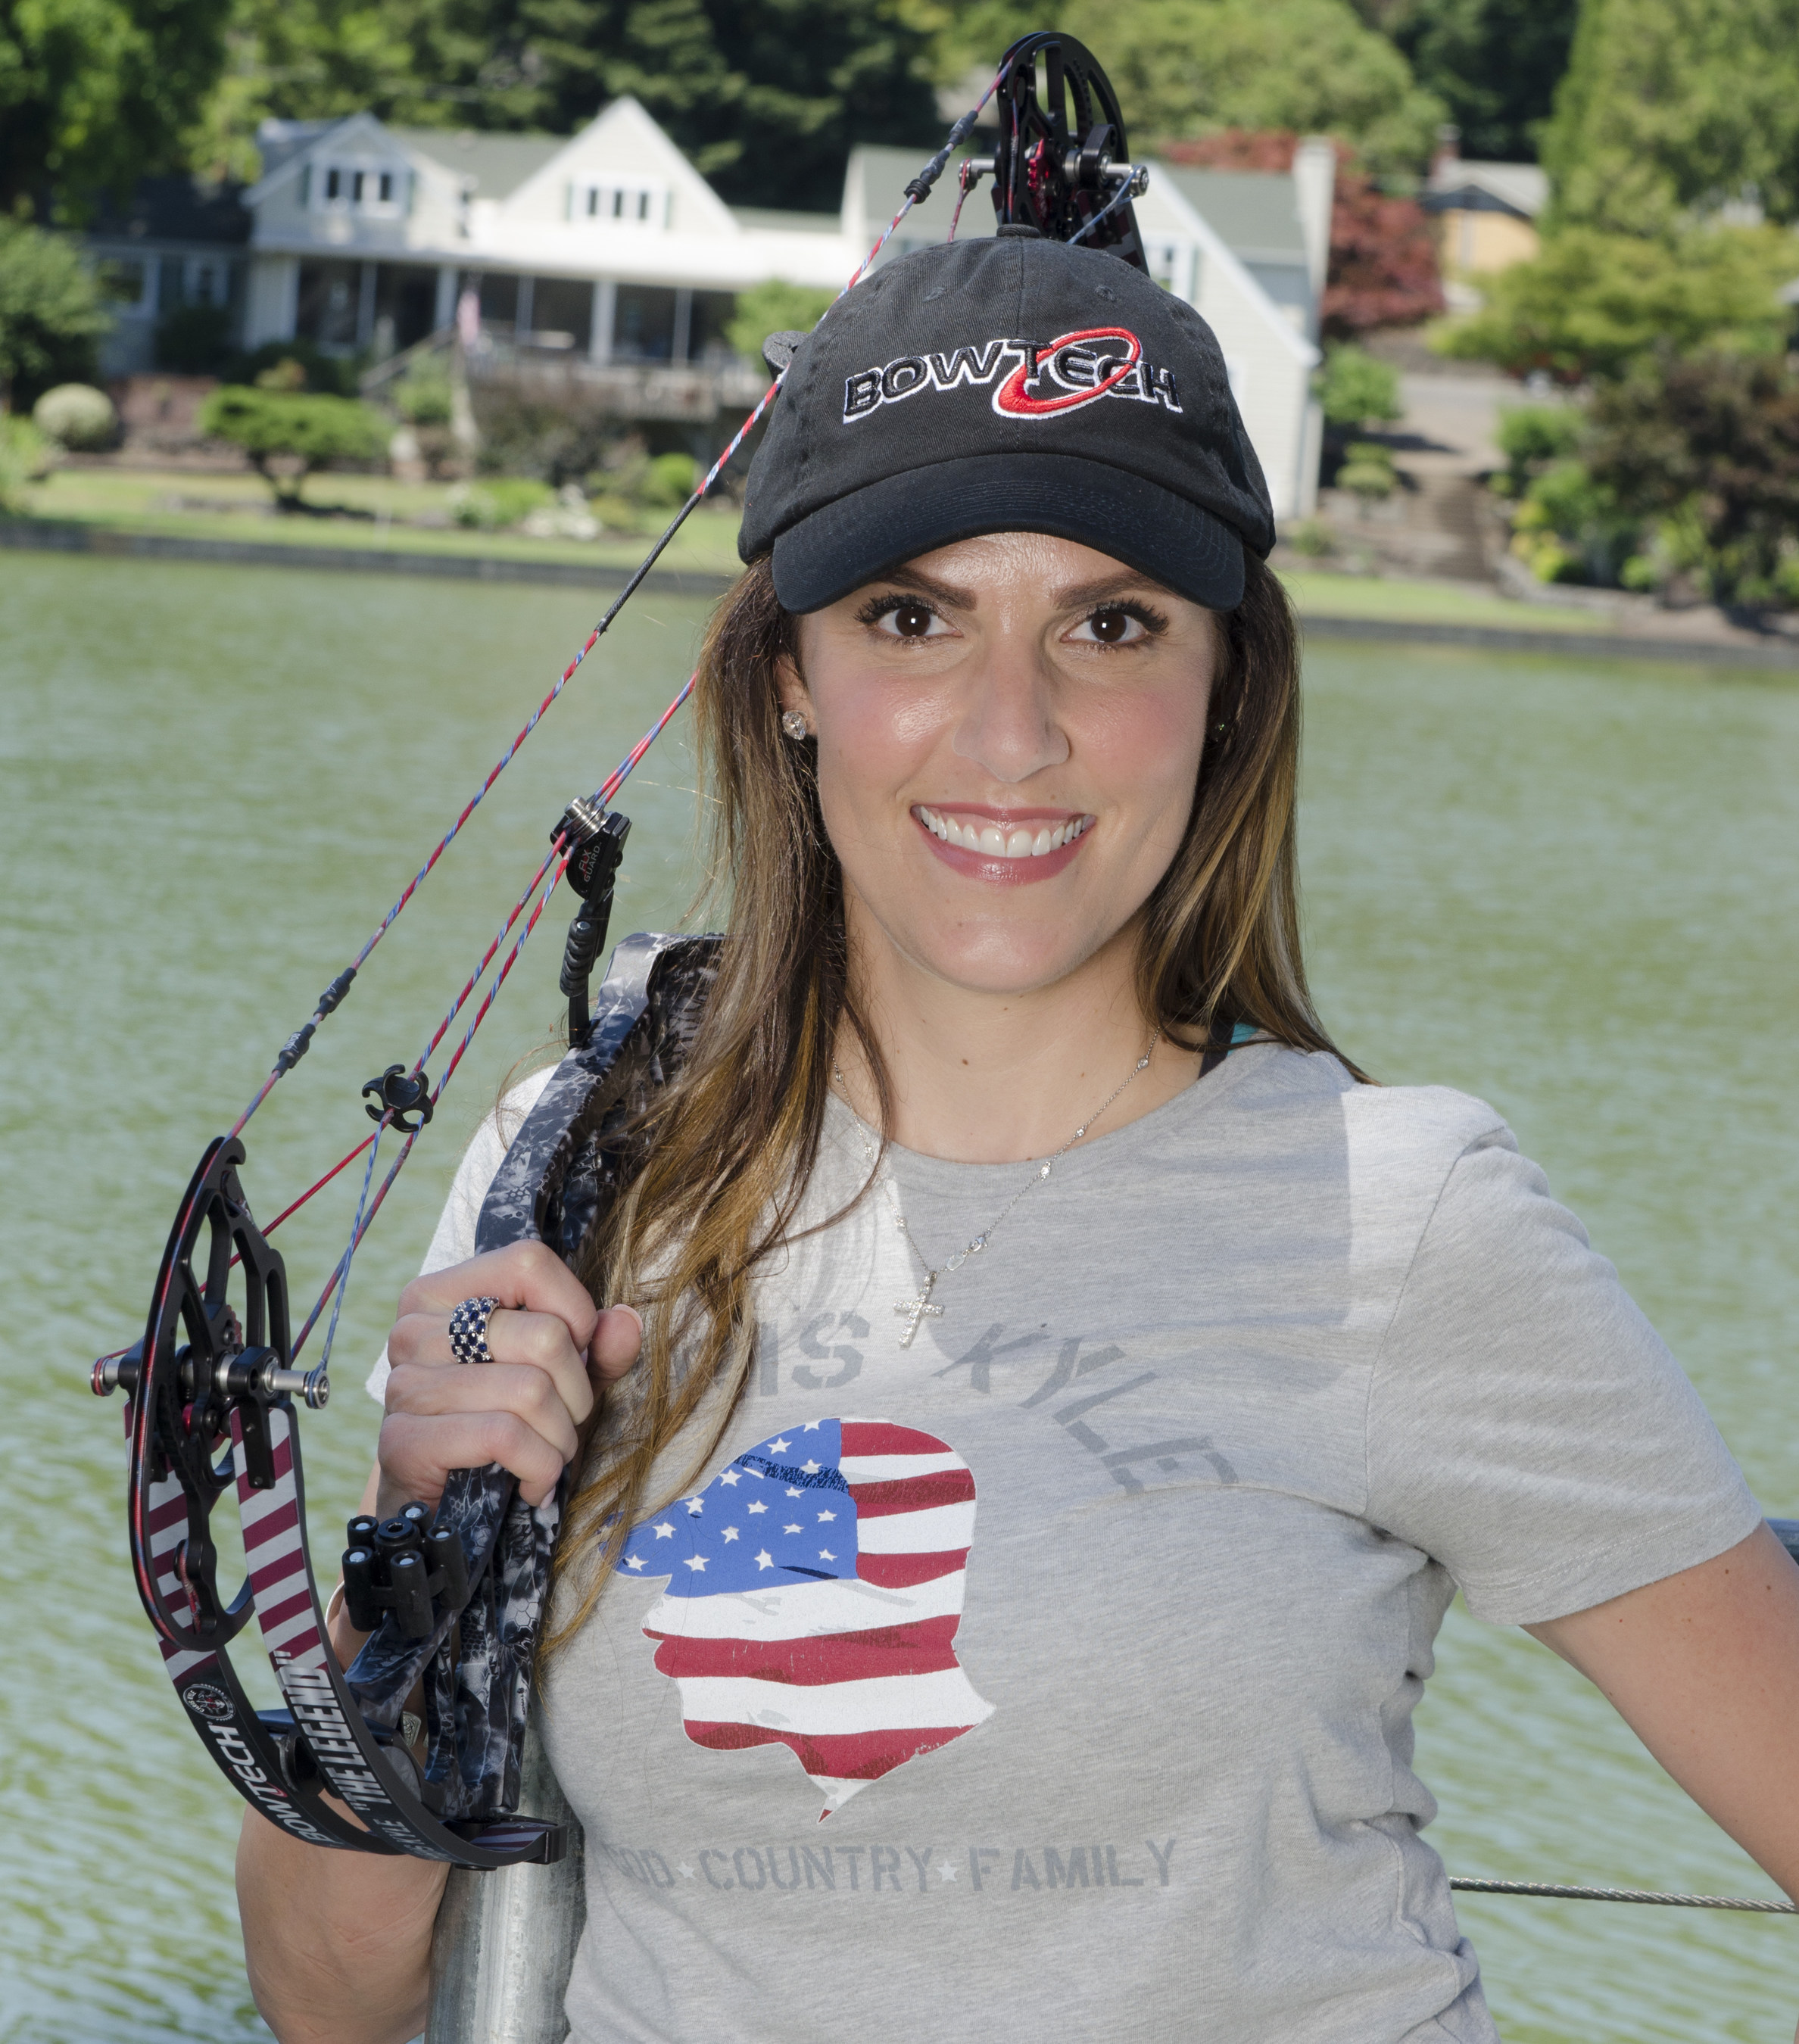 The Chris Kyle Frog Foundation was launched on Veterans Day 2014 and was the vision of Chris Kyle prior to his death. Taya, as Executive Director of CKFF, continues to work tirelessly to extend Chris's legacy through the Foundation.